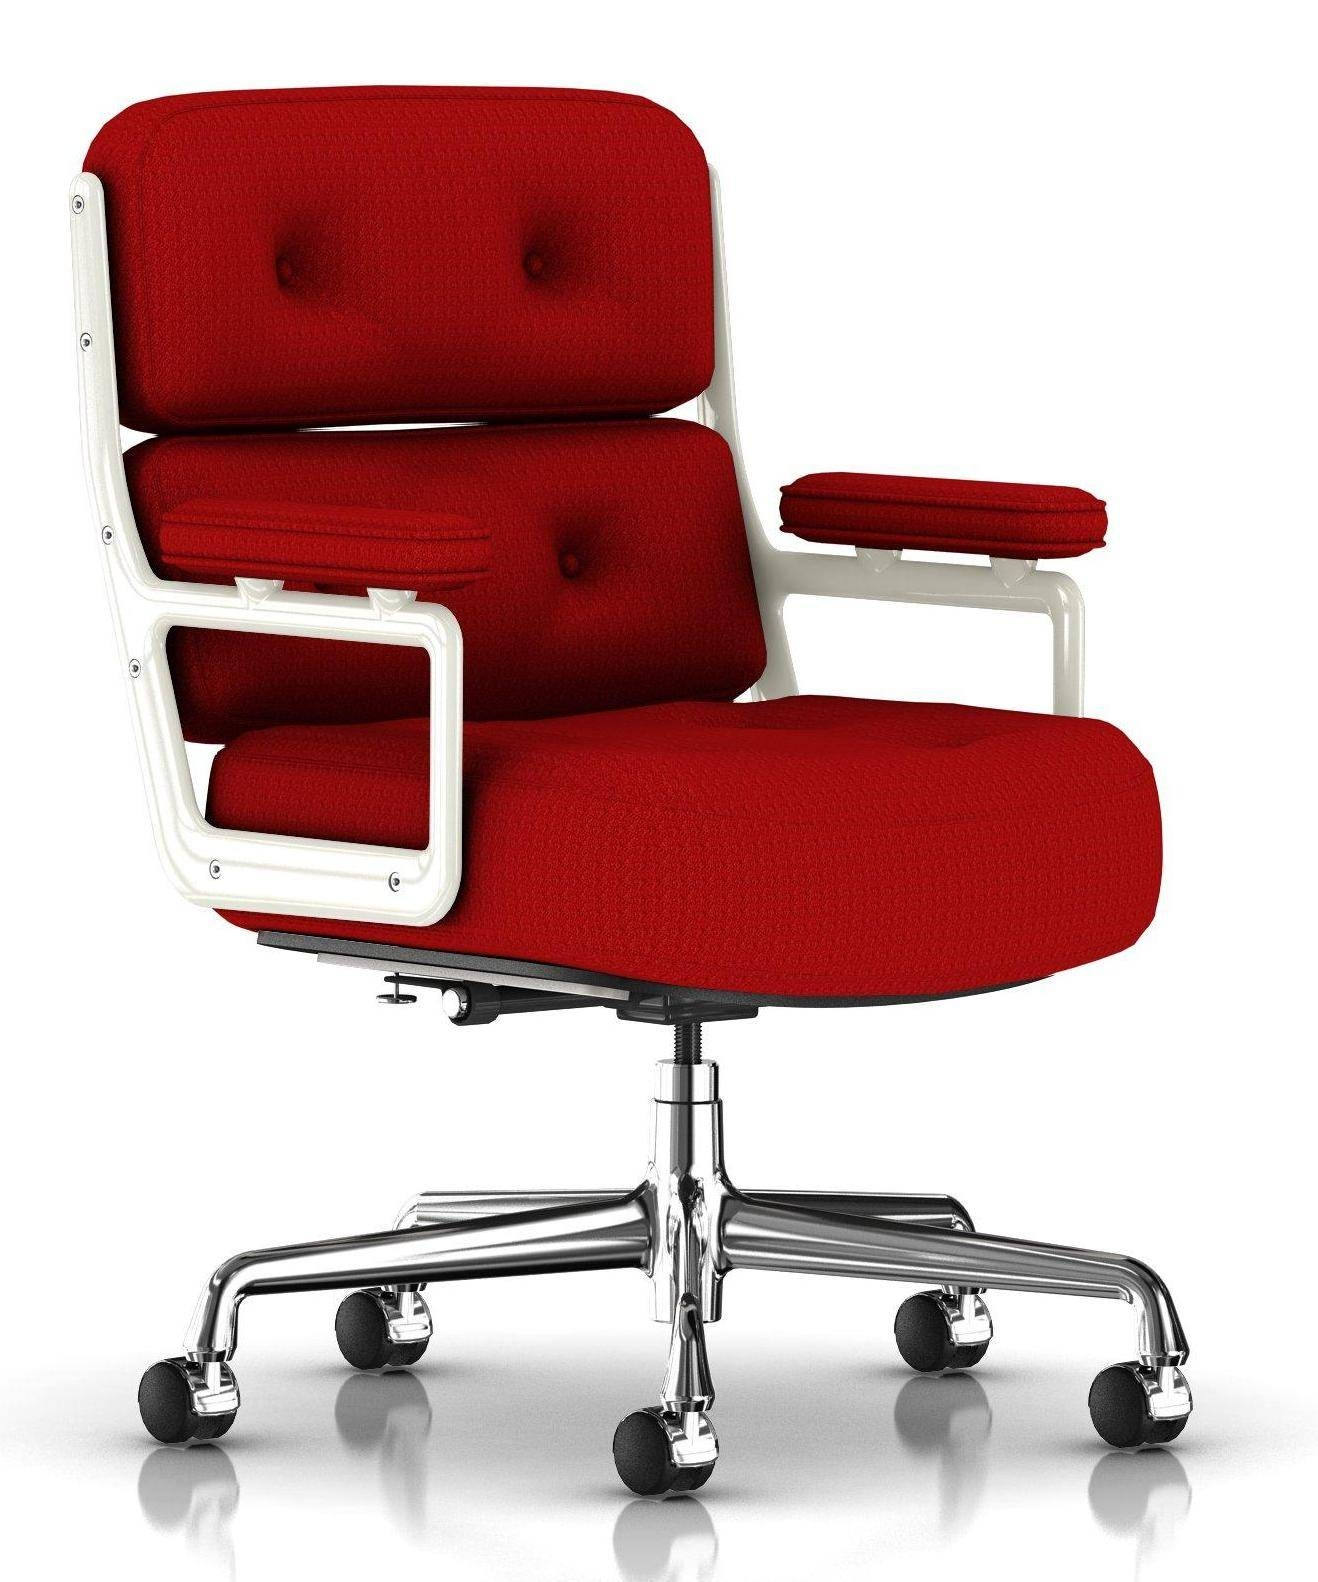 Office Sofa Chair 39 Ideas About Office Sofa Chair - Cryomats in Sofa Desk Chairs (Image 6 of 15)